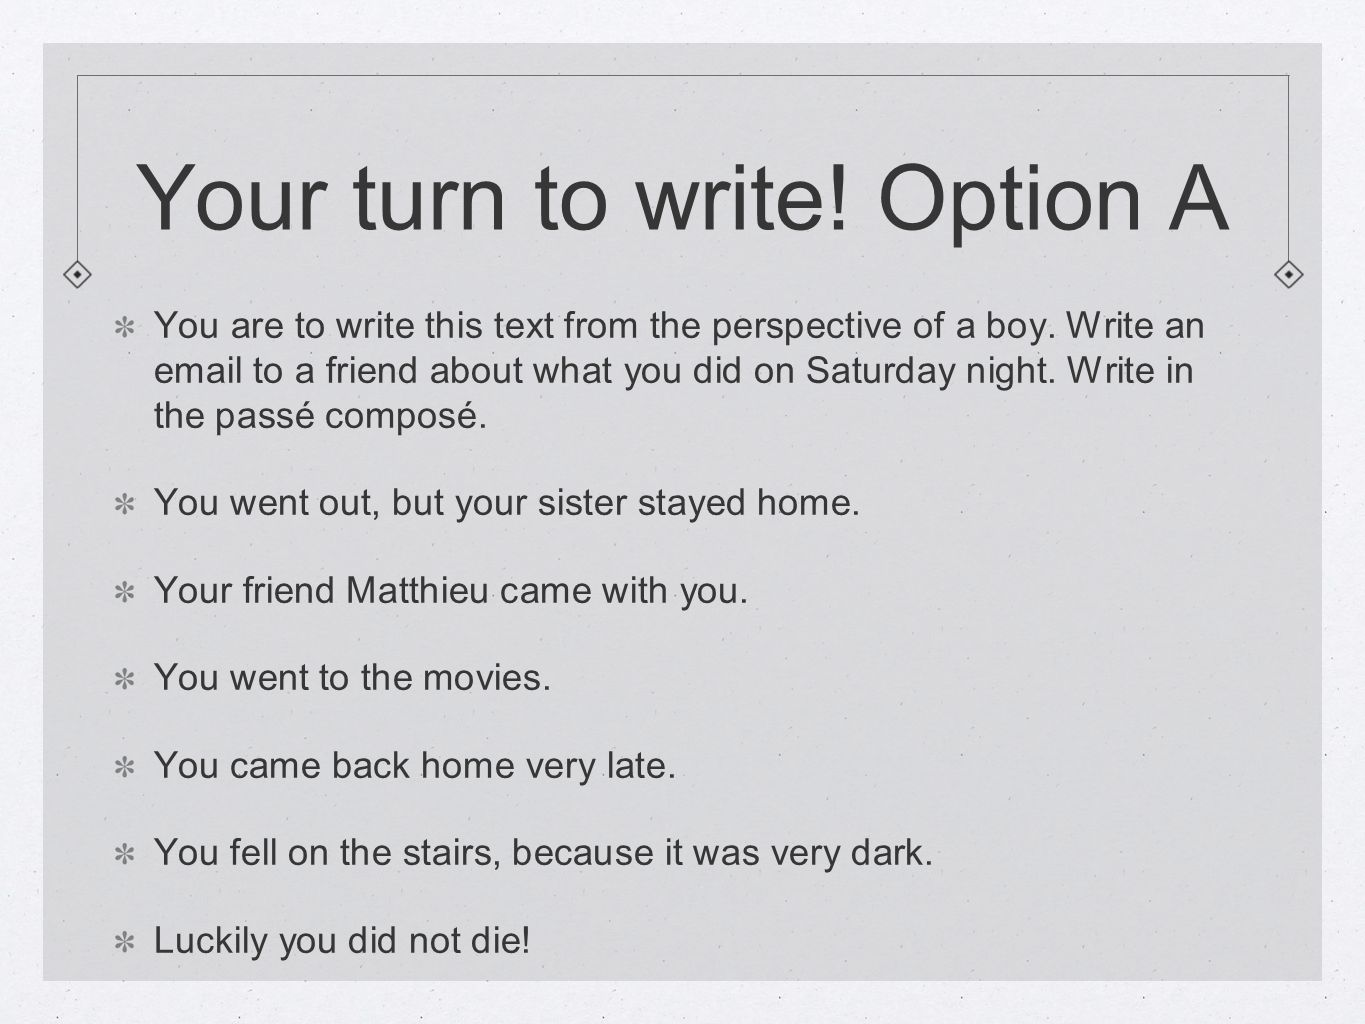 Your turn to write! Option A